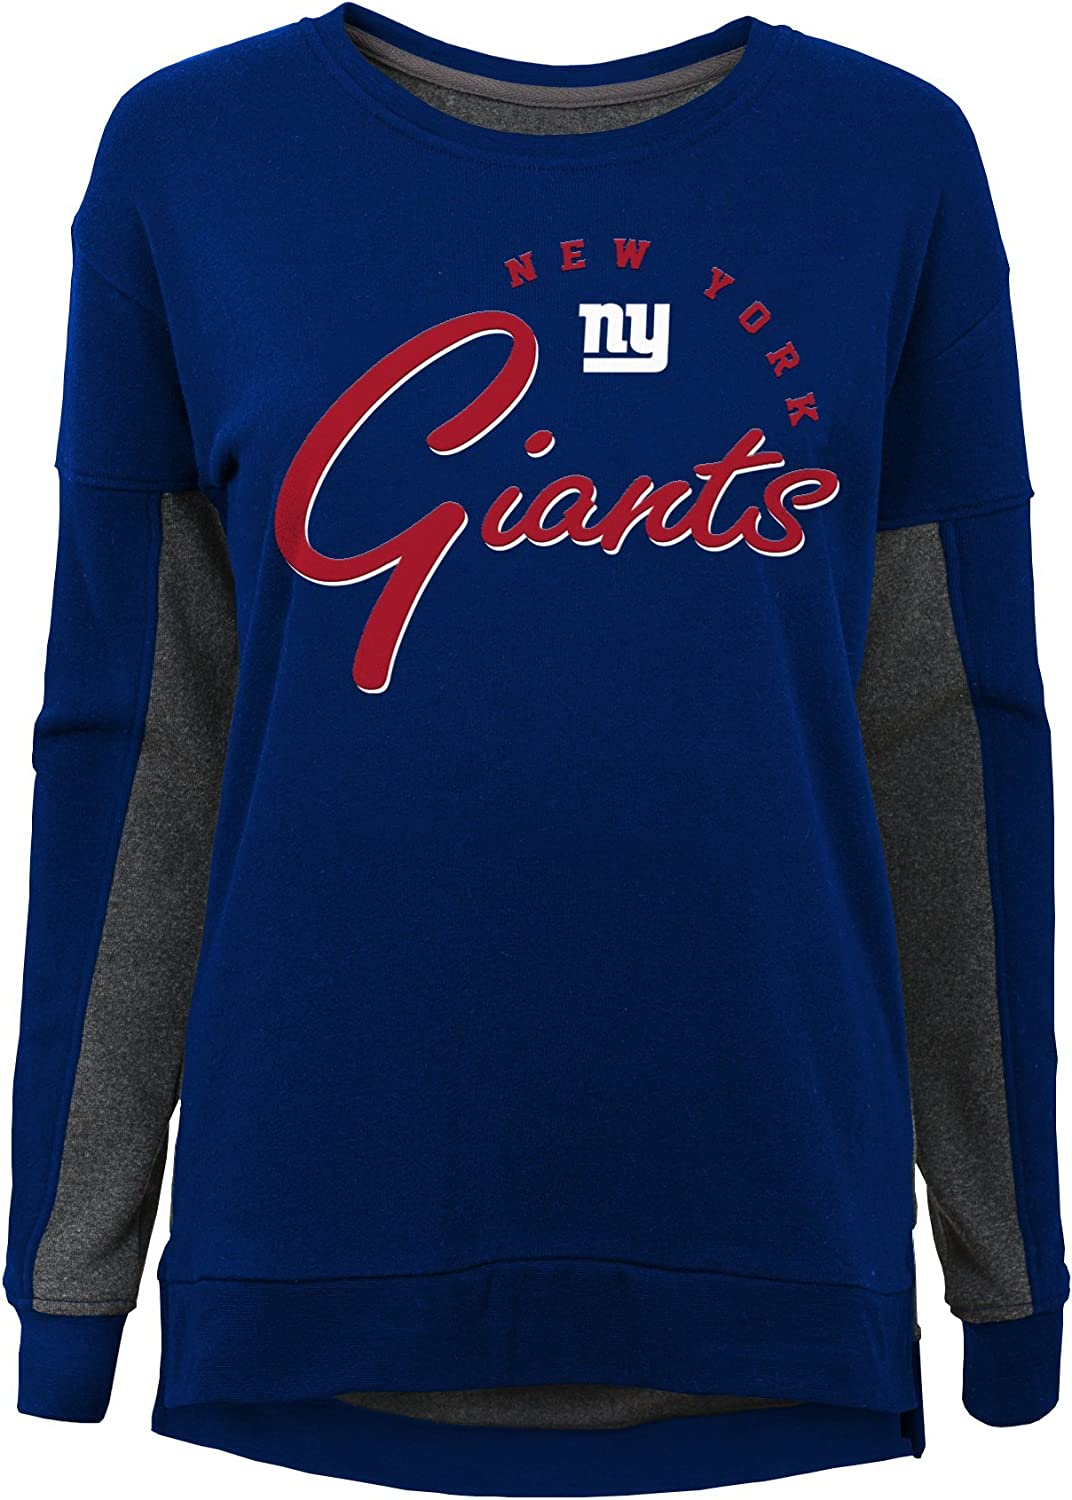 Youth Large NFL New York Giants Youth Girls In the Mix Long Sleeve Crew Neck Top Dark Royal 14